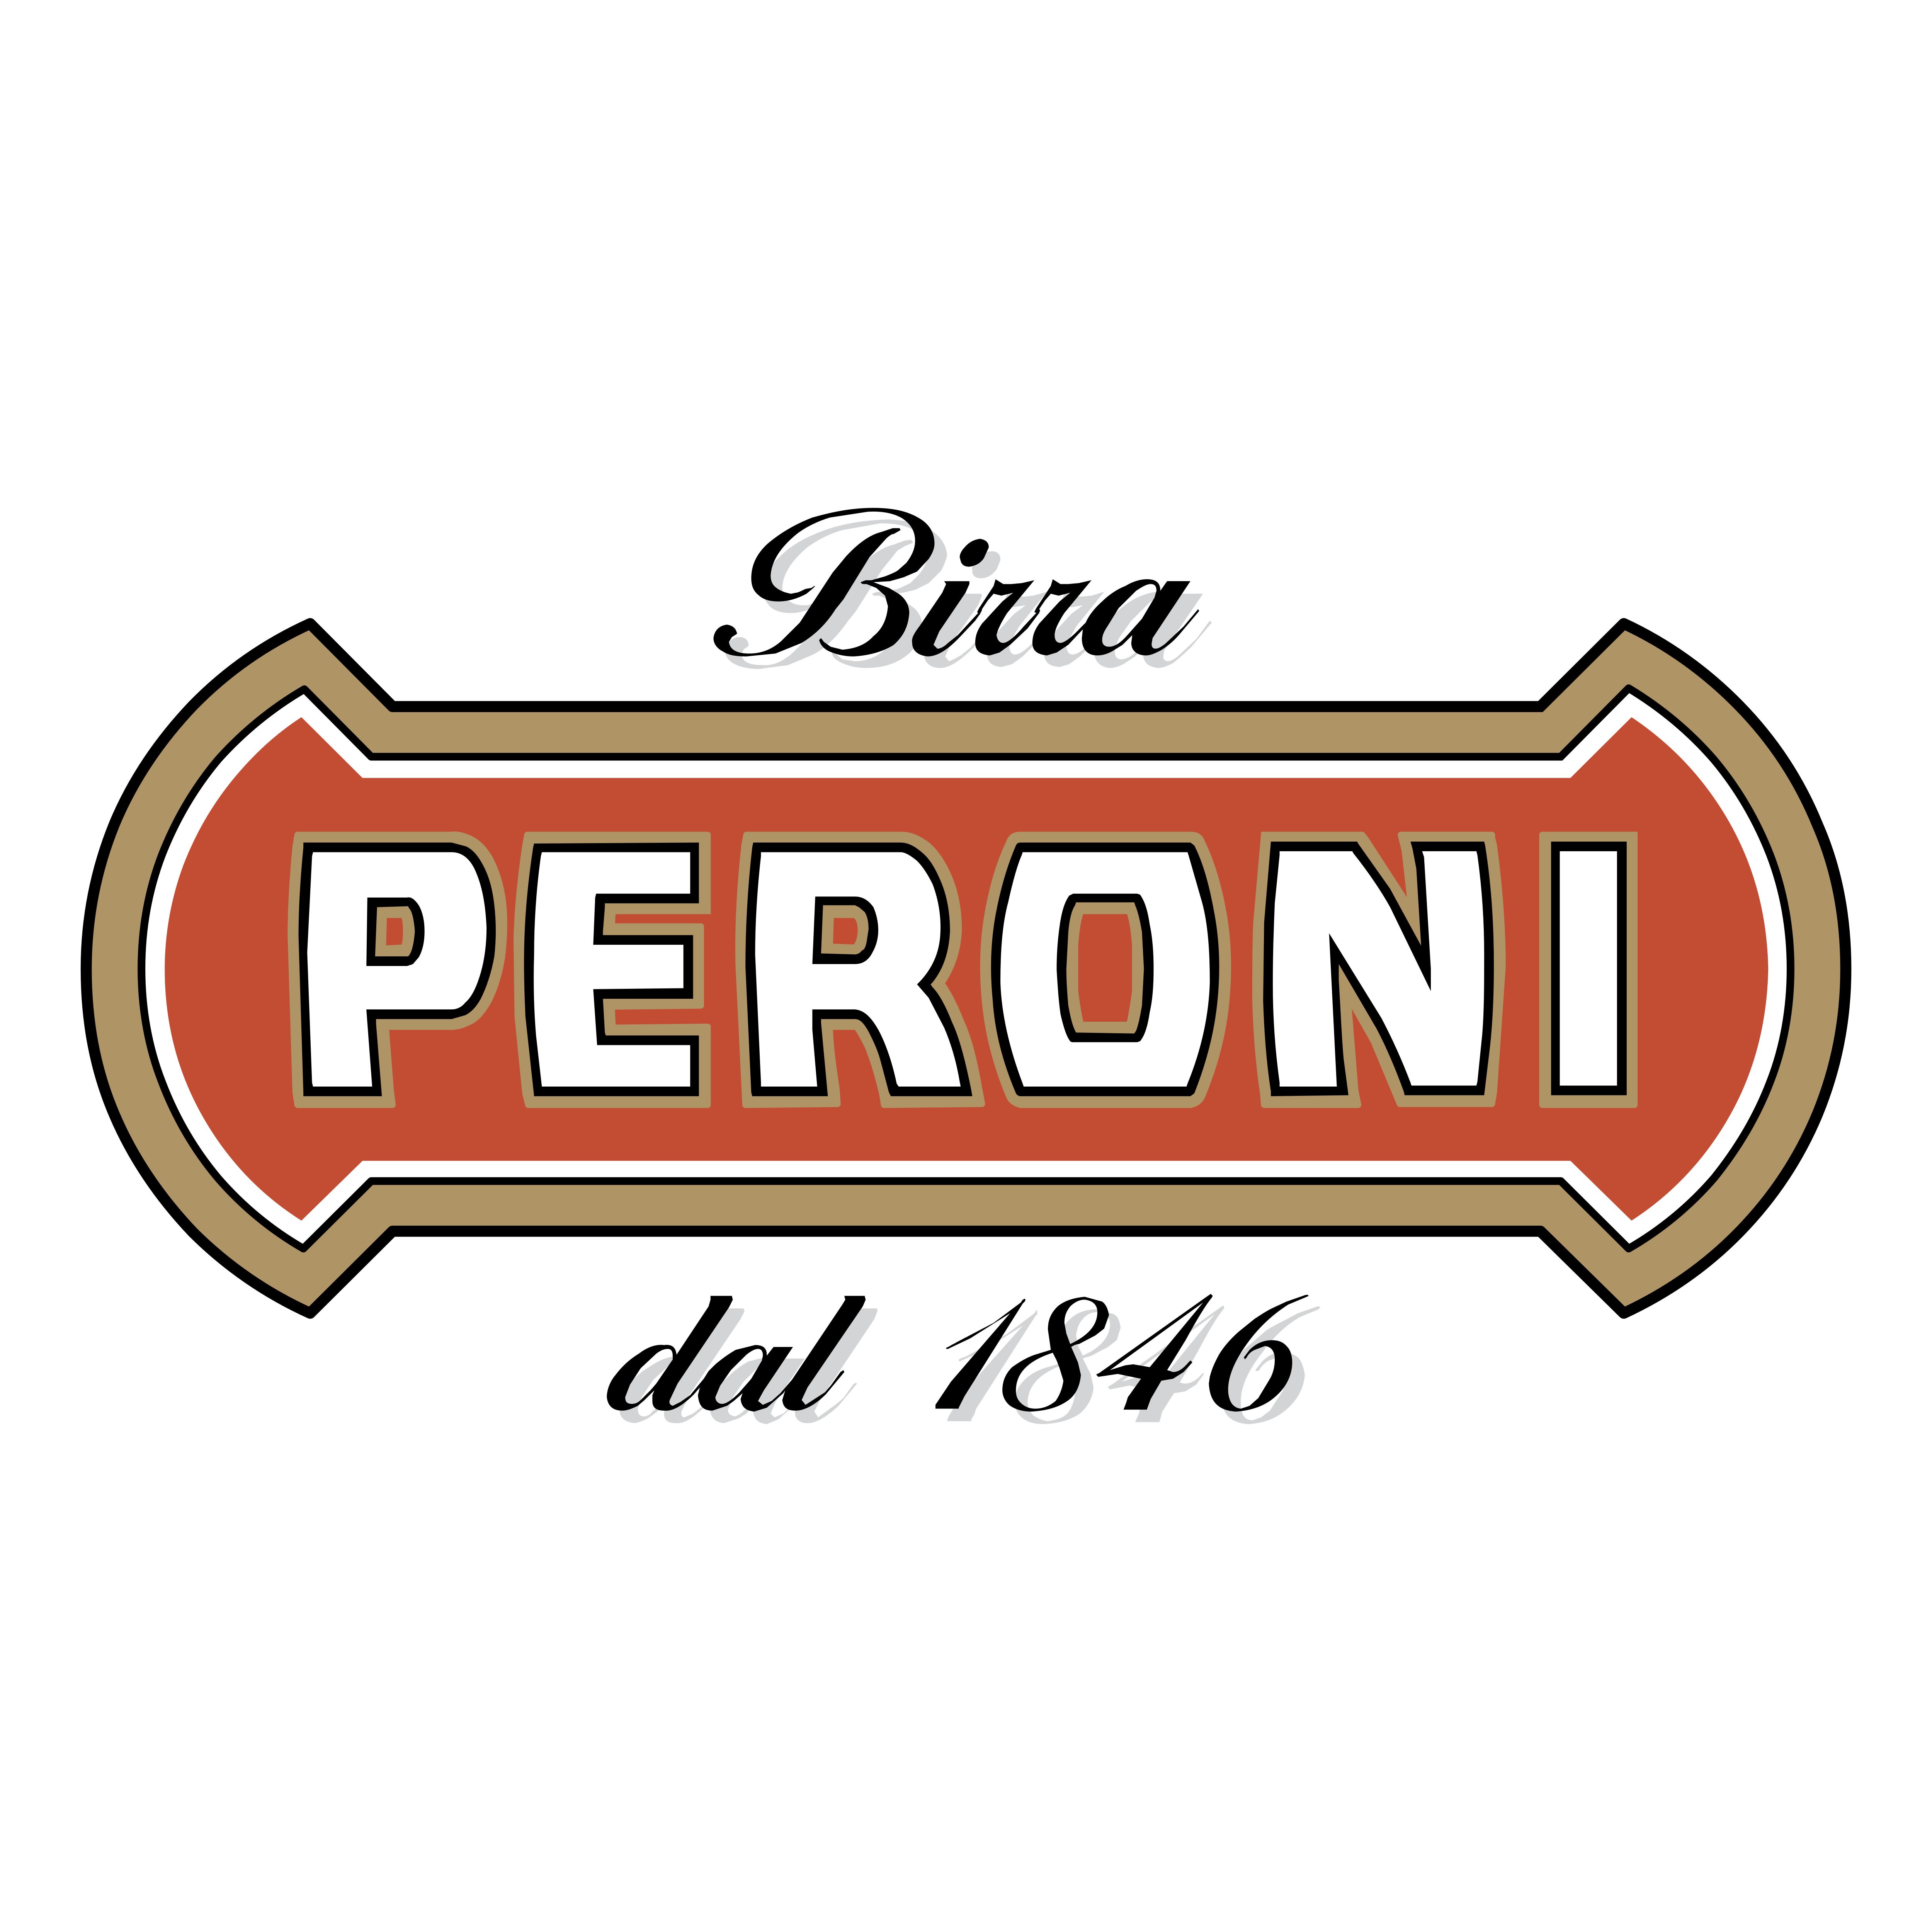 peroni birra logos download rh logos download com peroni login persona logo